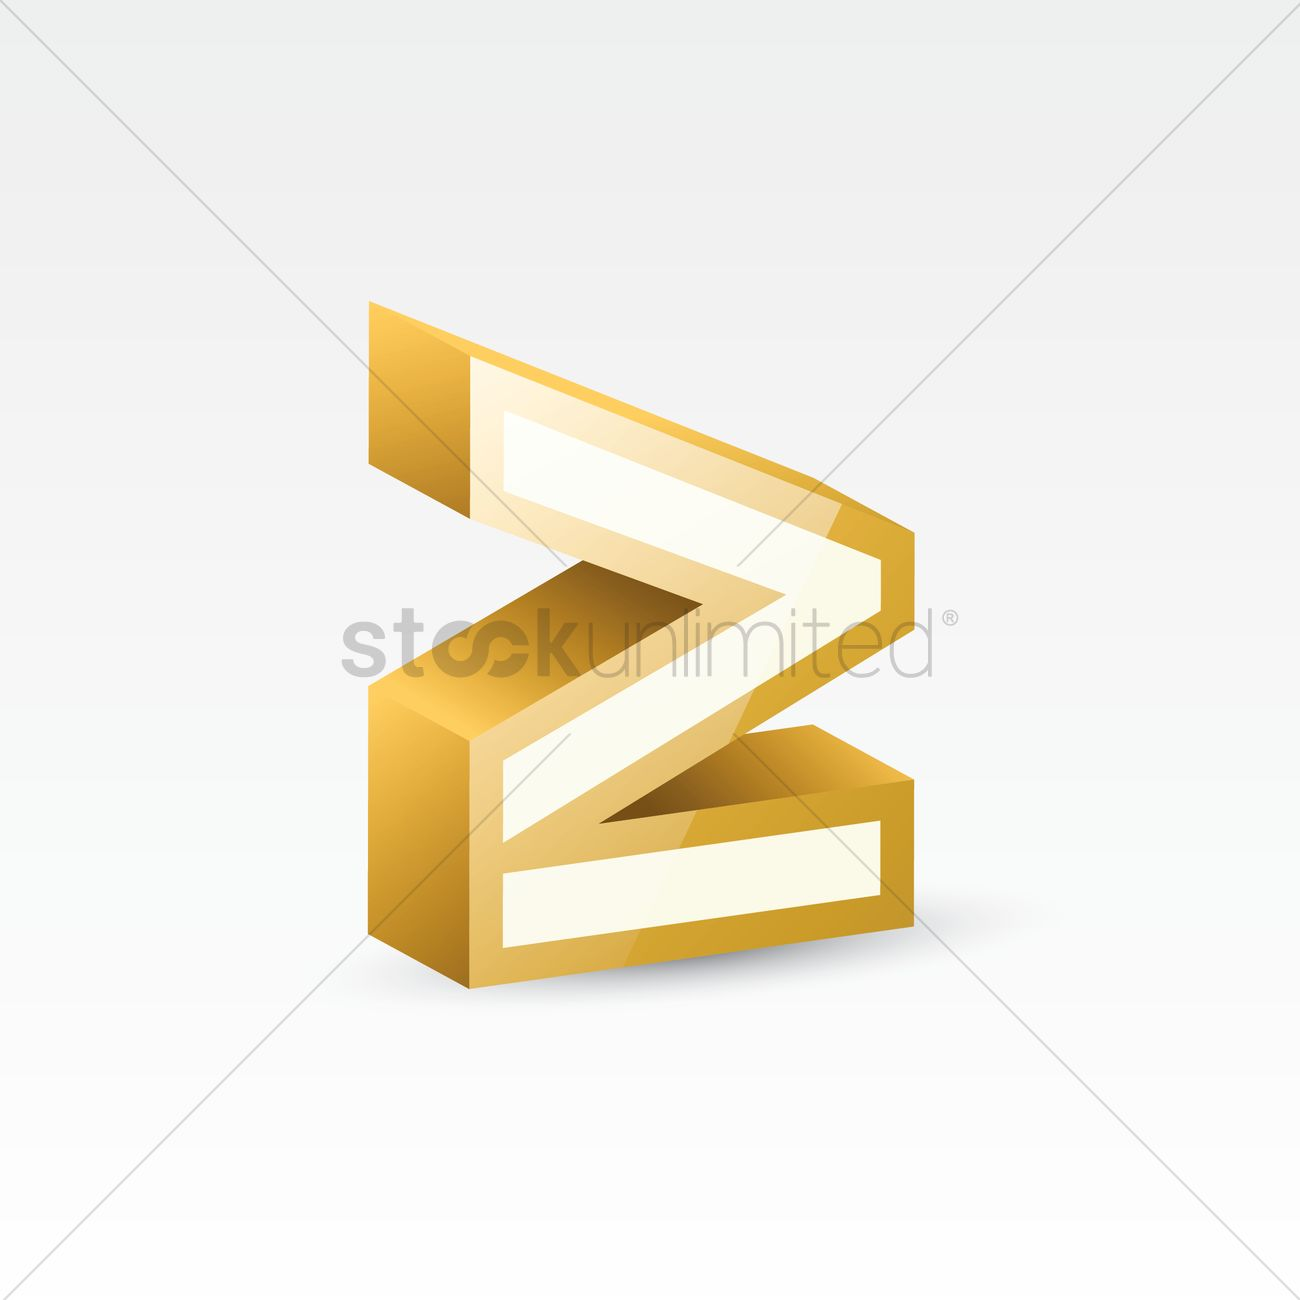 Greater Than Equal To Symbol Vector Image 1617120 Stockunlimited